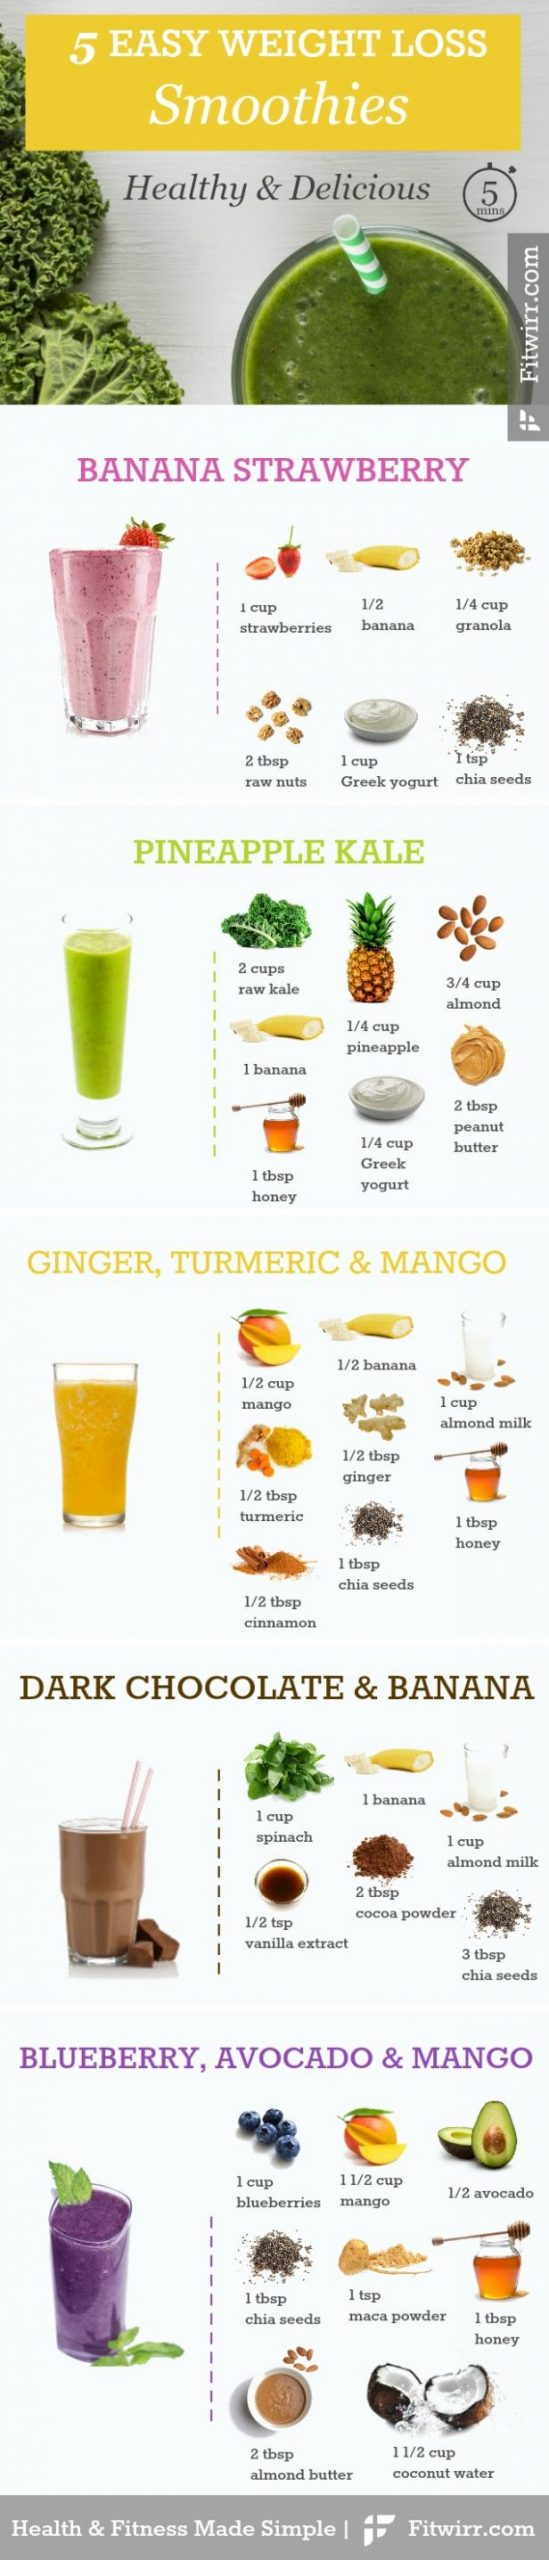 Healthy Smoothie Recipes - 8 Best Smoothies for Weight Loss - Fitwirr - Smoothie Recipes For Weight Loss And Detox